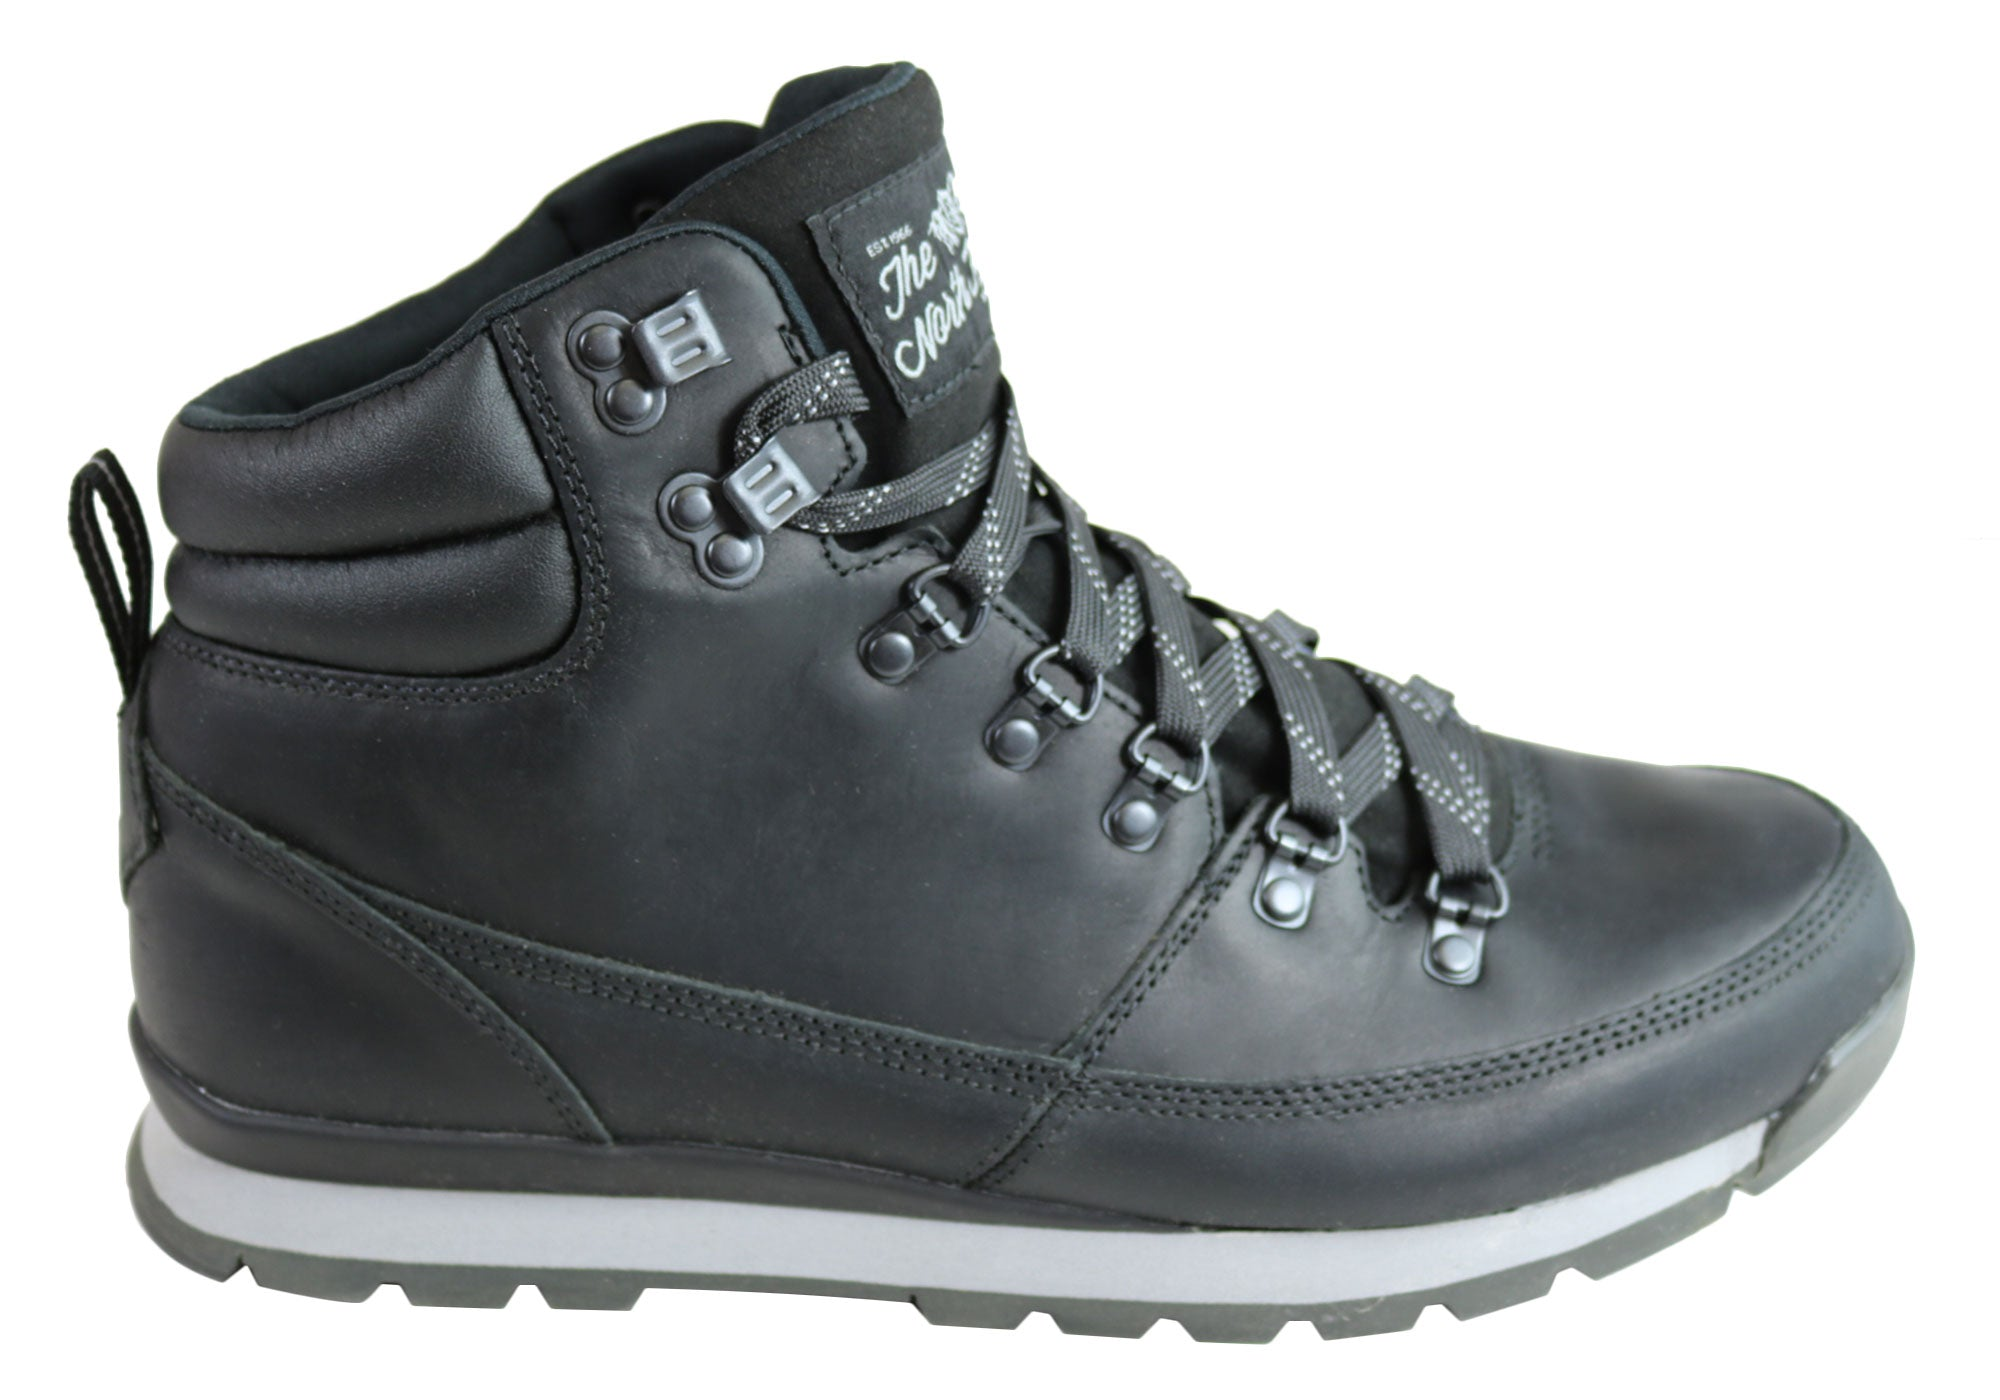 3639d7e8d The North Face Mens Comfortable Back To Berkeley Redux Leather Boots